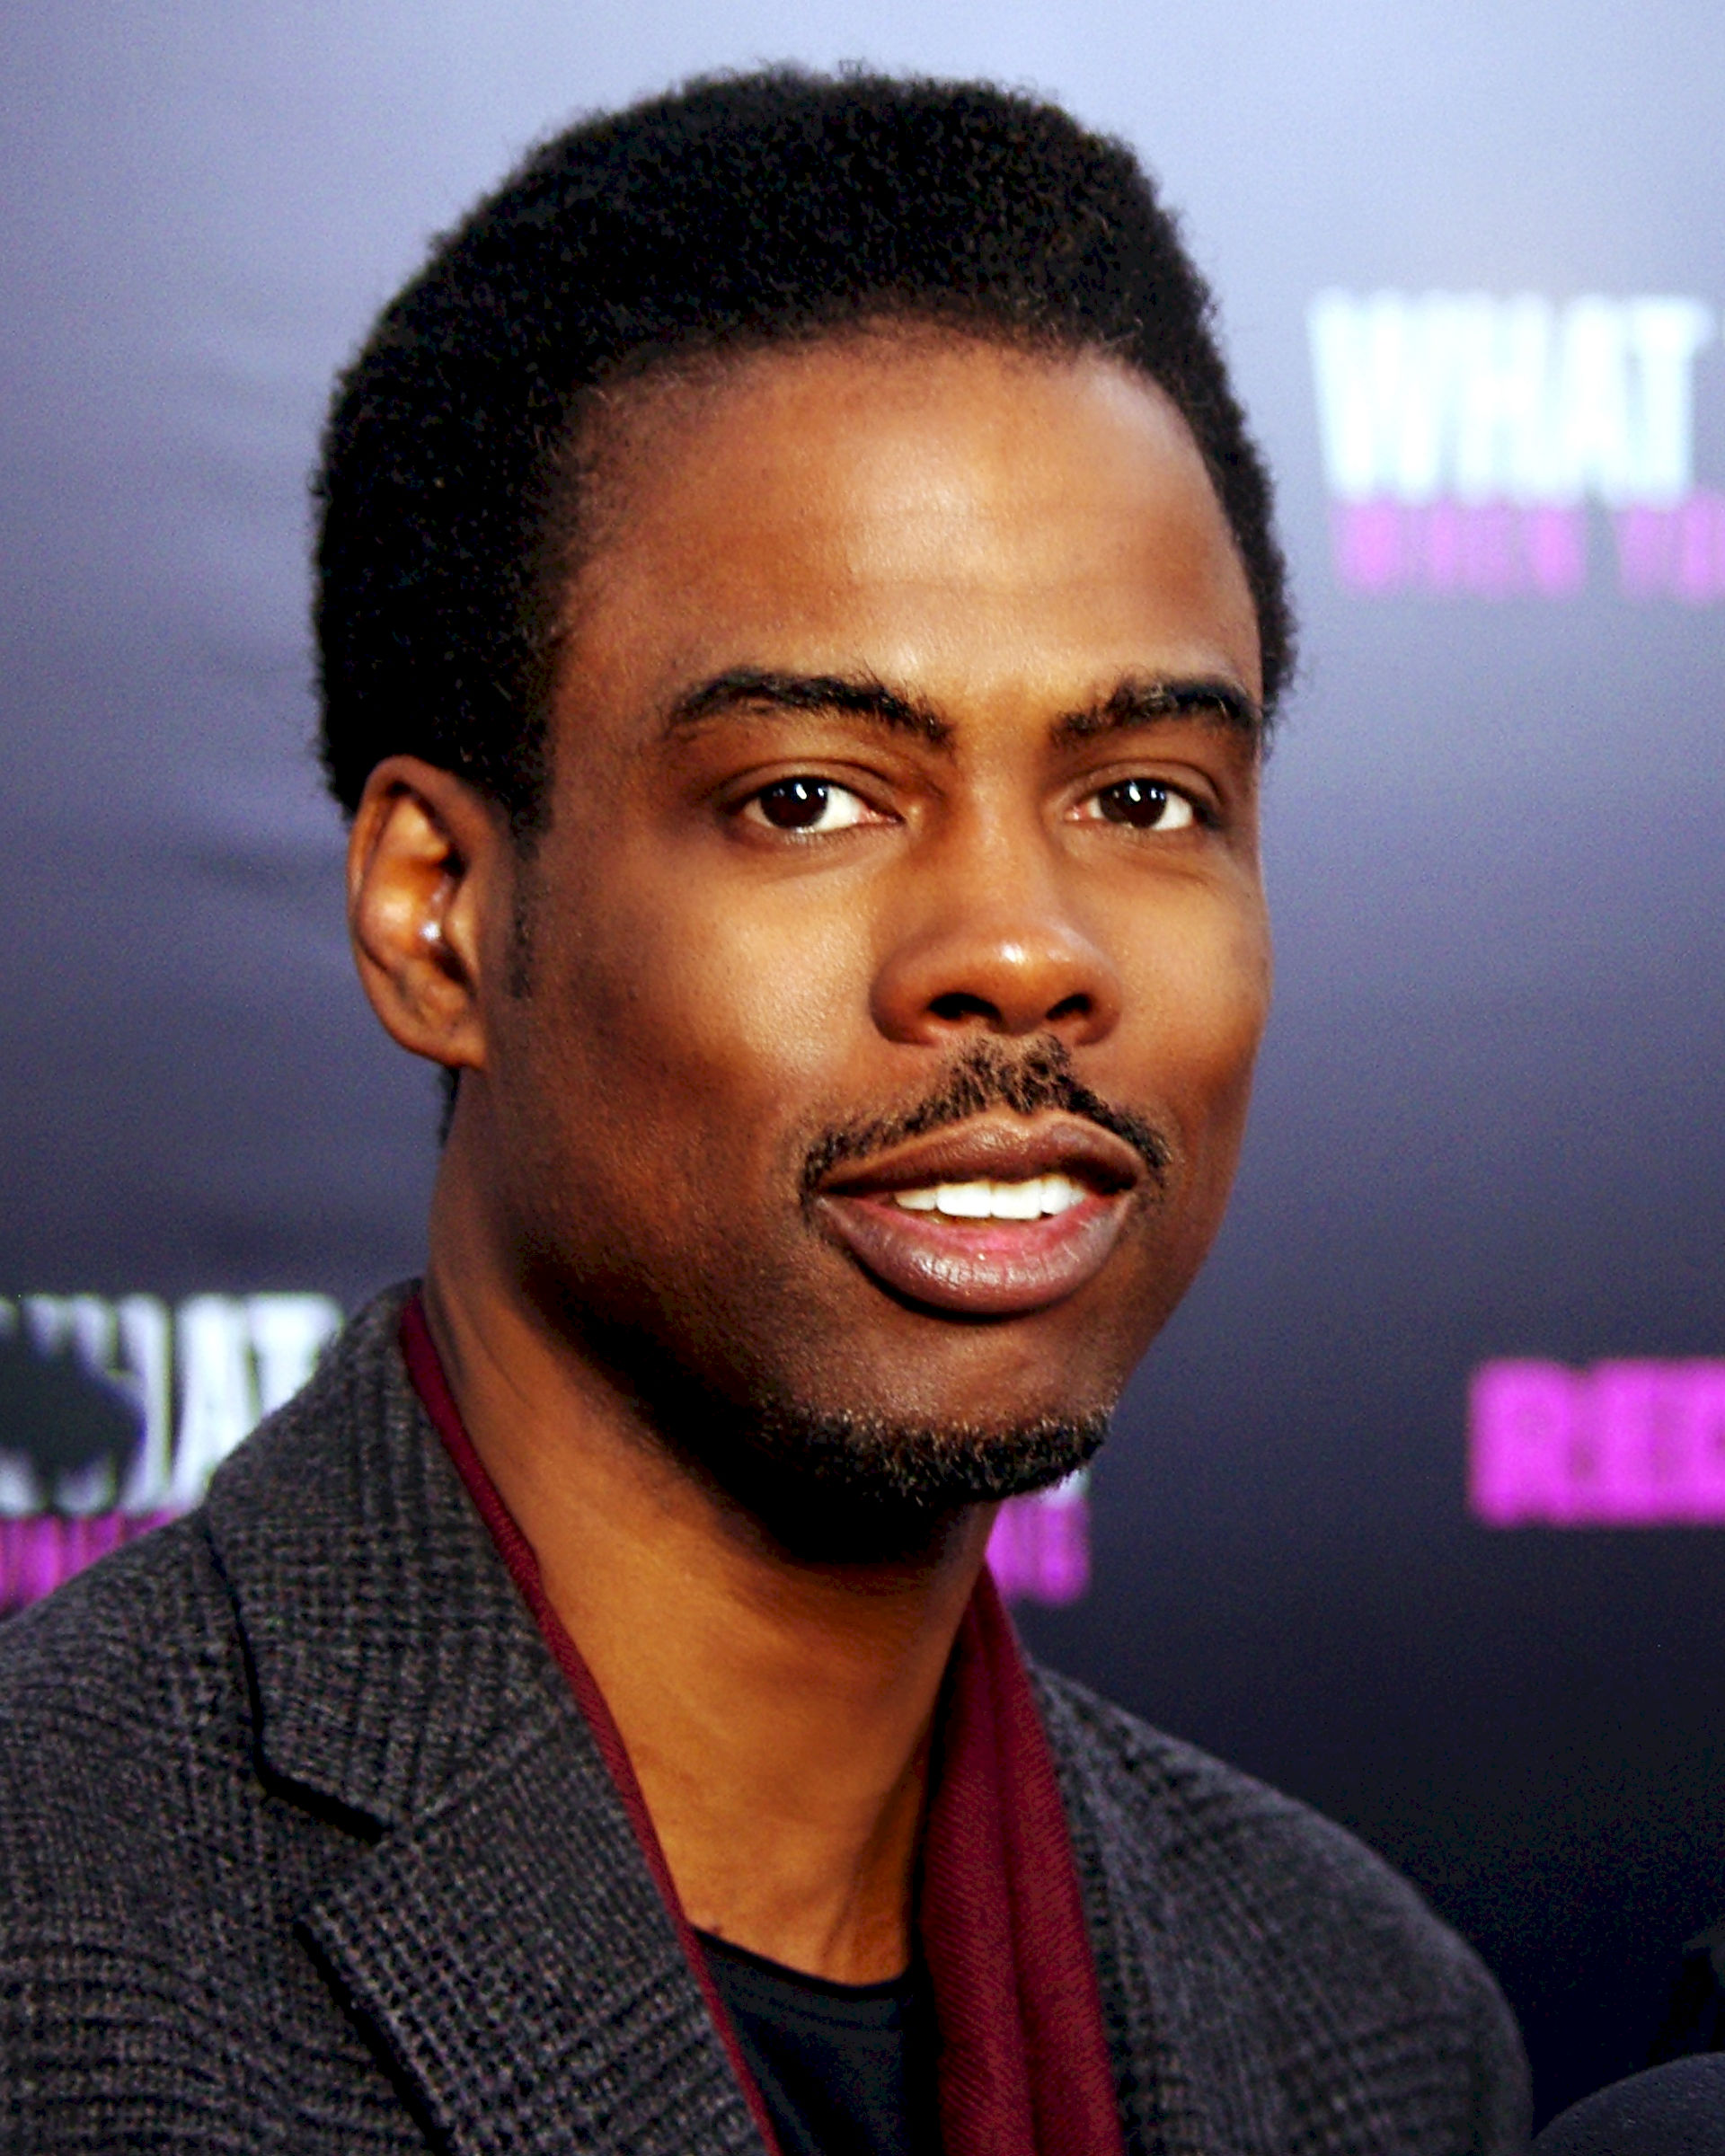 Photo of Chris Rock: American comedian, actor, screenwriter, television producer, film producer, and director